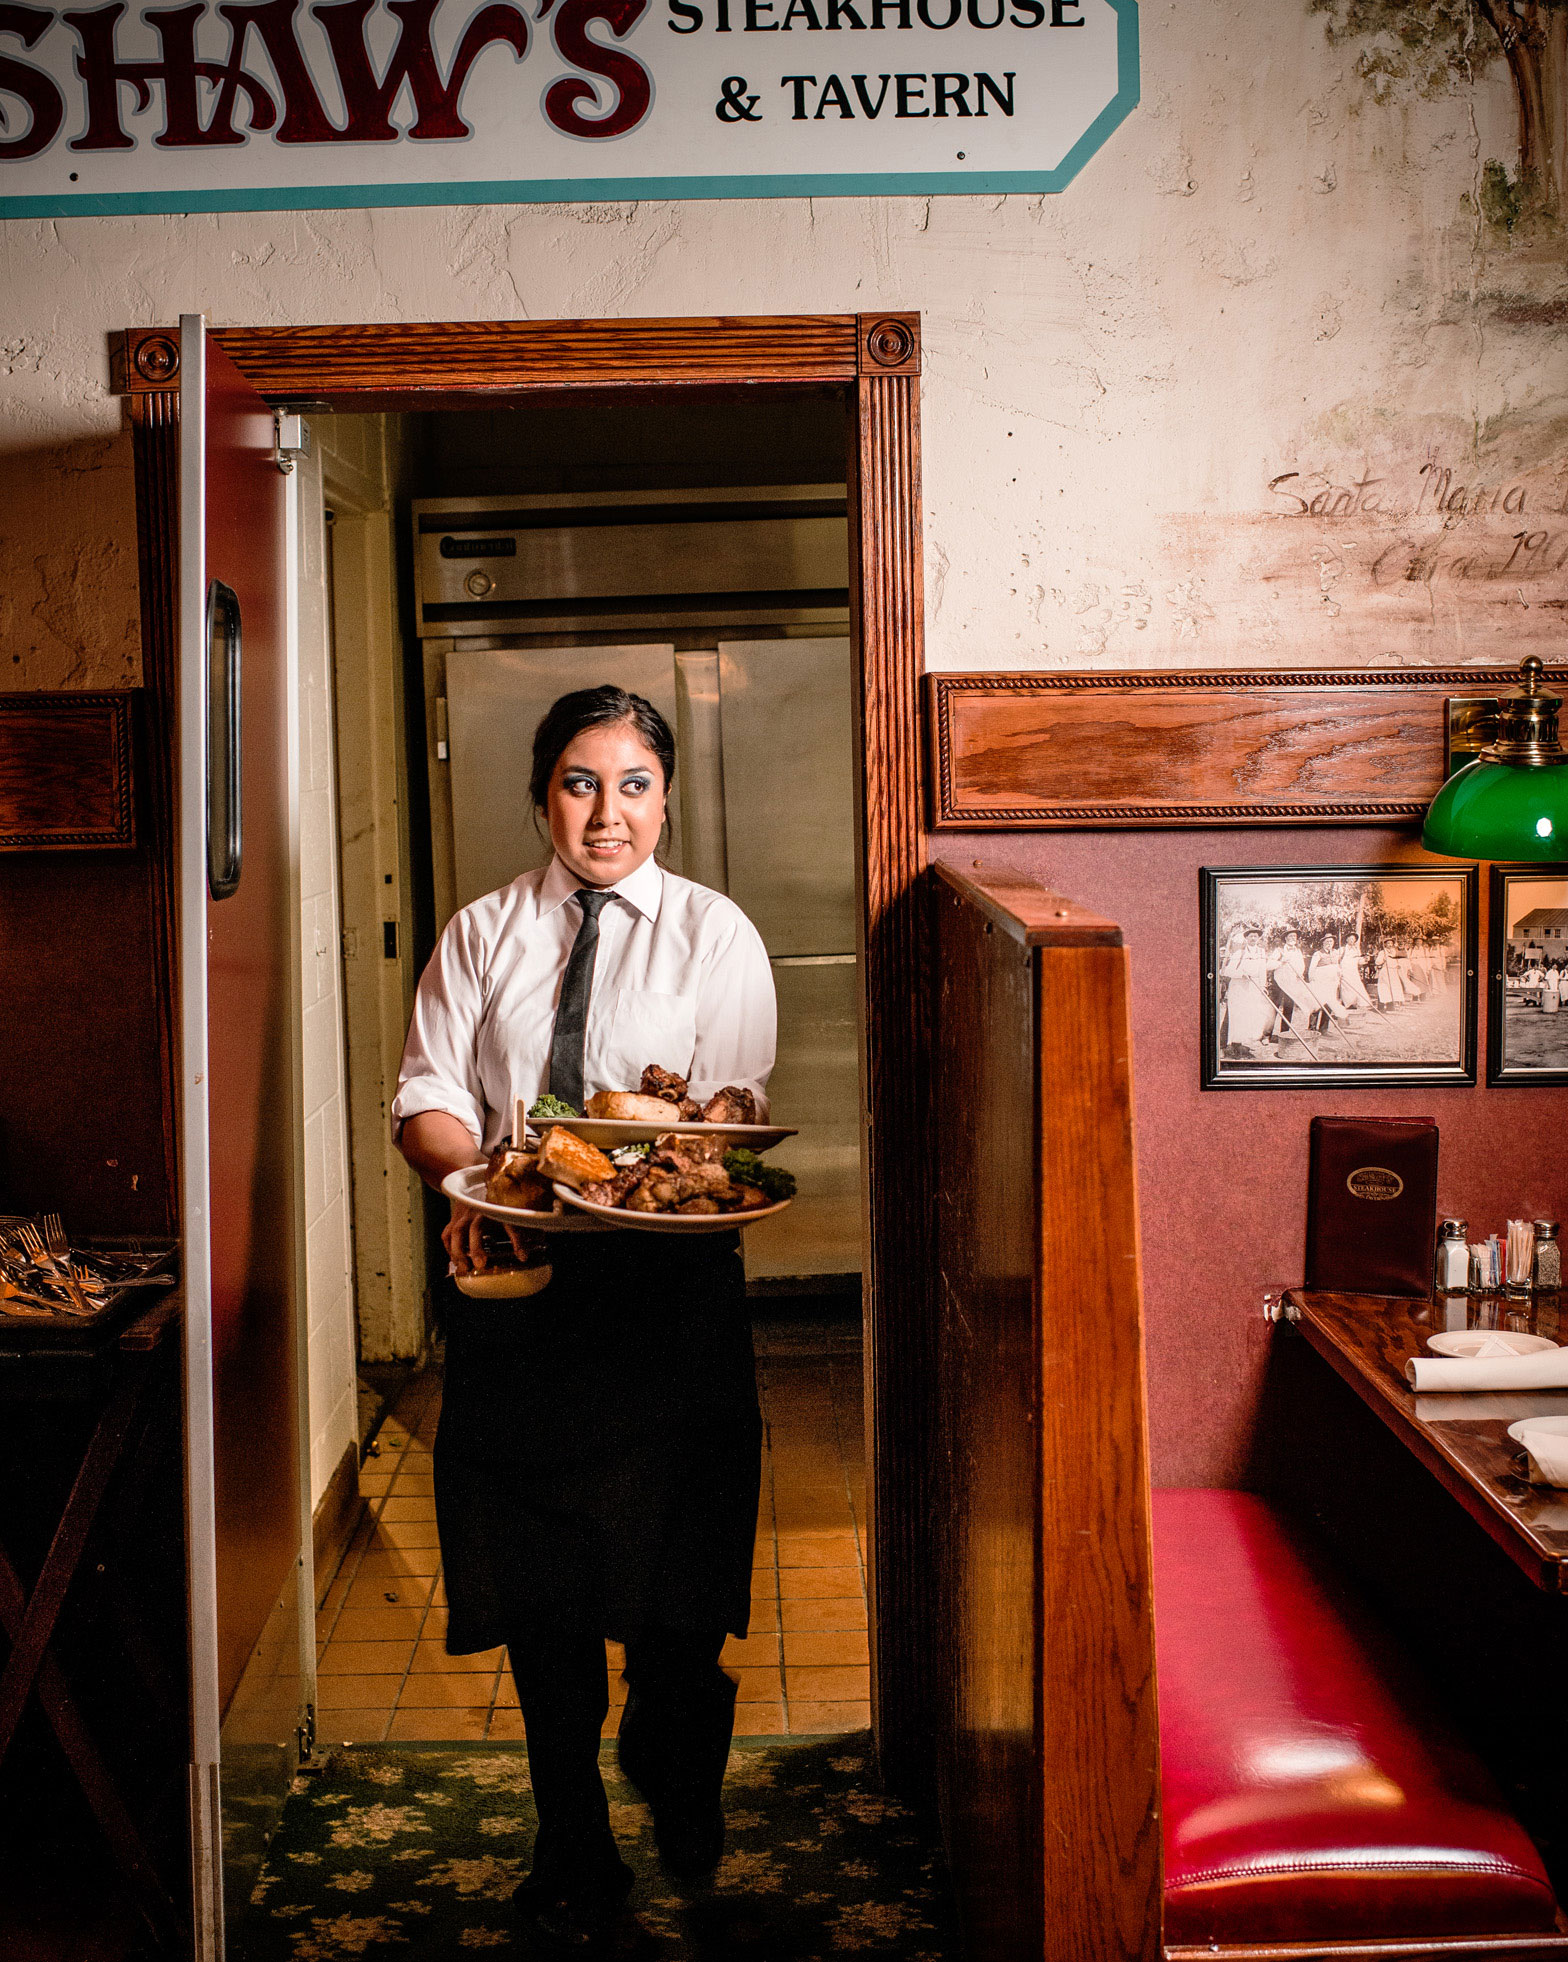 a waitress at Shaw's steak house